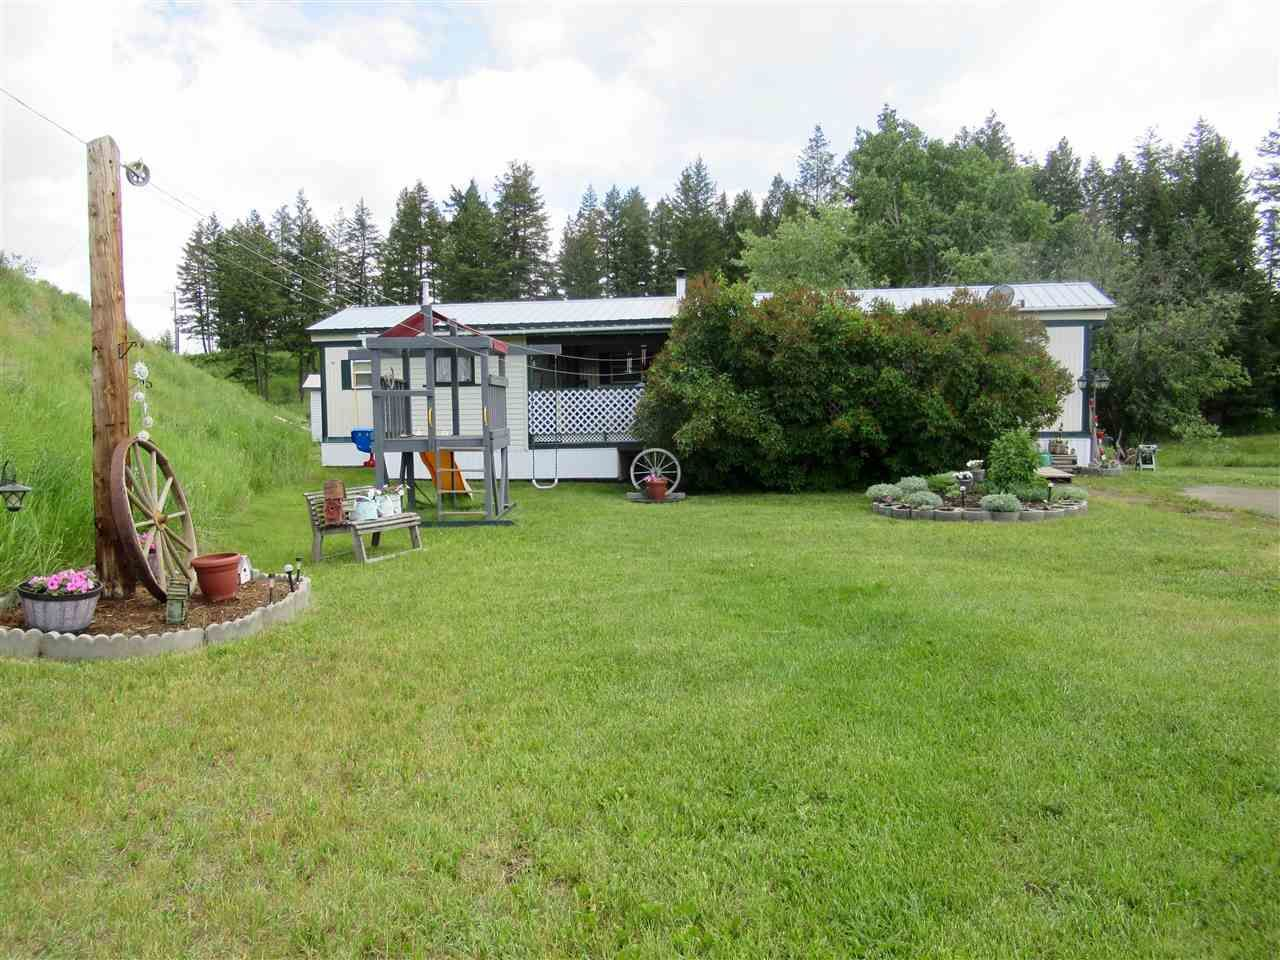 Main Photo: 7 SETTLER Place: 150 Mile House Manufactured Home for sale (Williams Lake (Zone 27))  : MLS®# R2387458